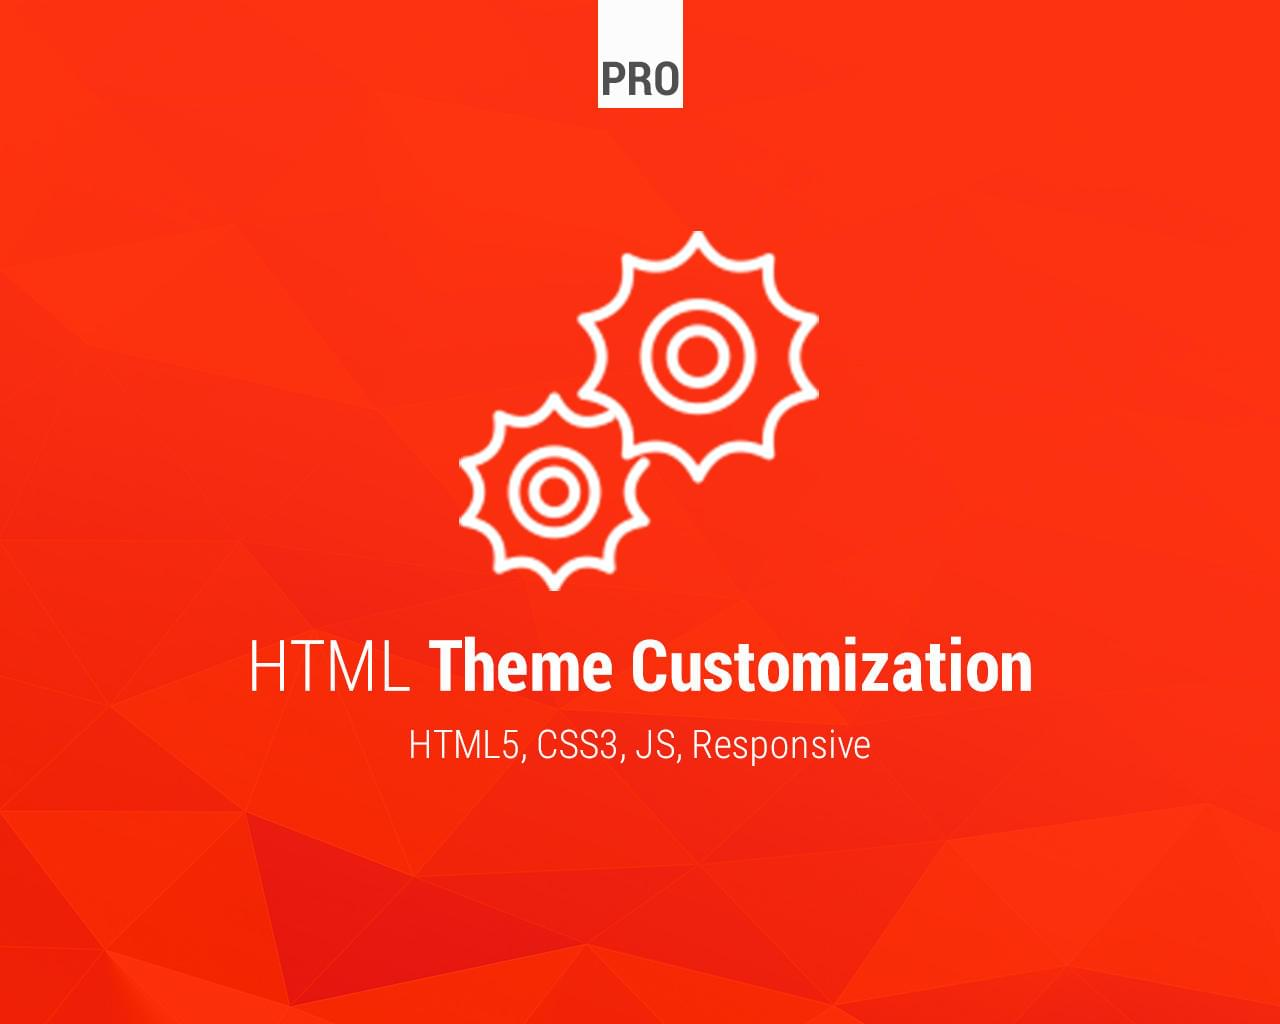 HTML Theme Customization - CSS / JS / Plugins by Lukasz_Czerwinski - 113567